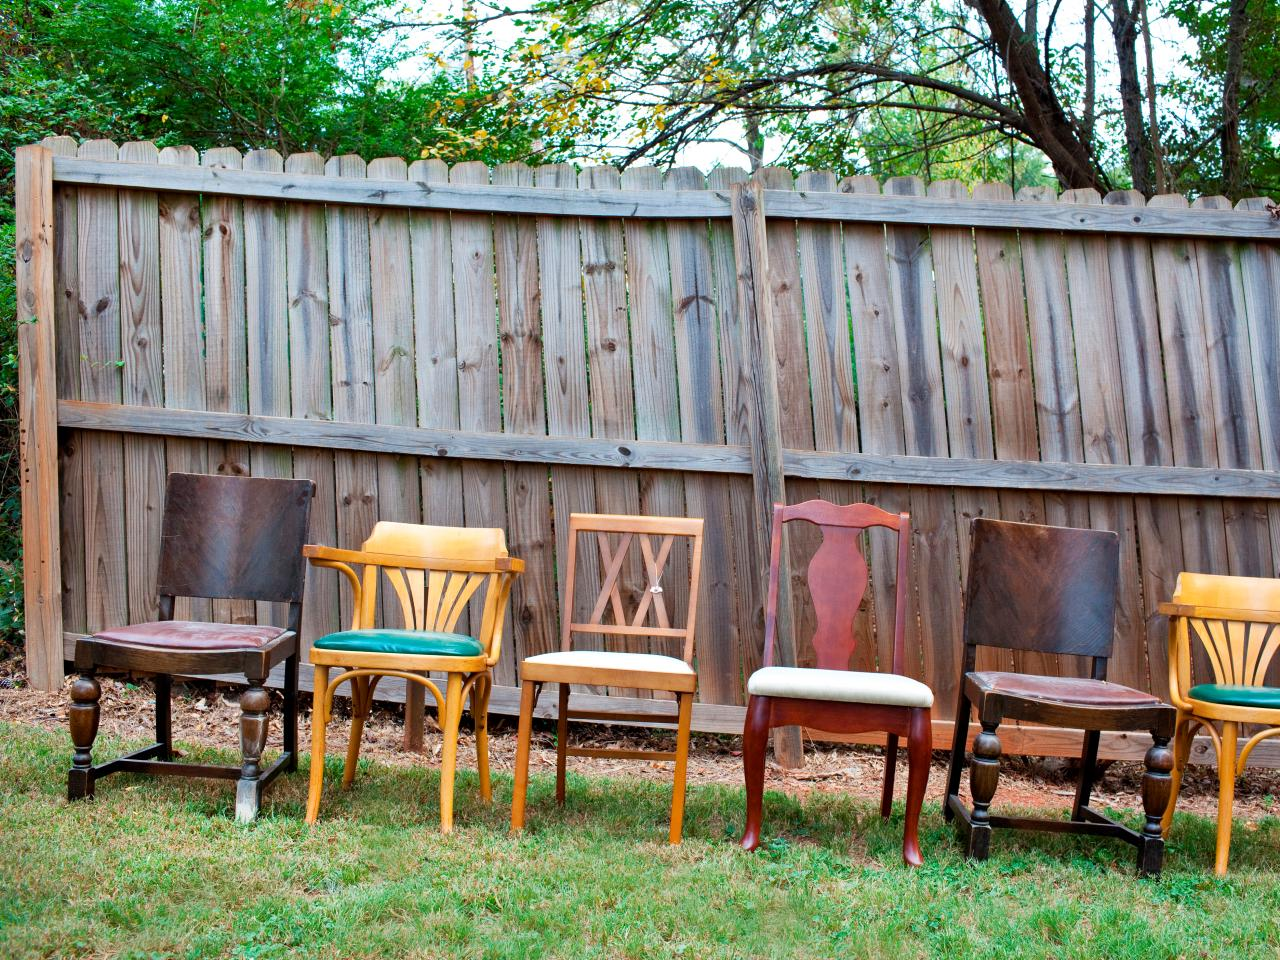 Paint Eclectic Chairs For A Cohesive Look